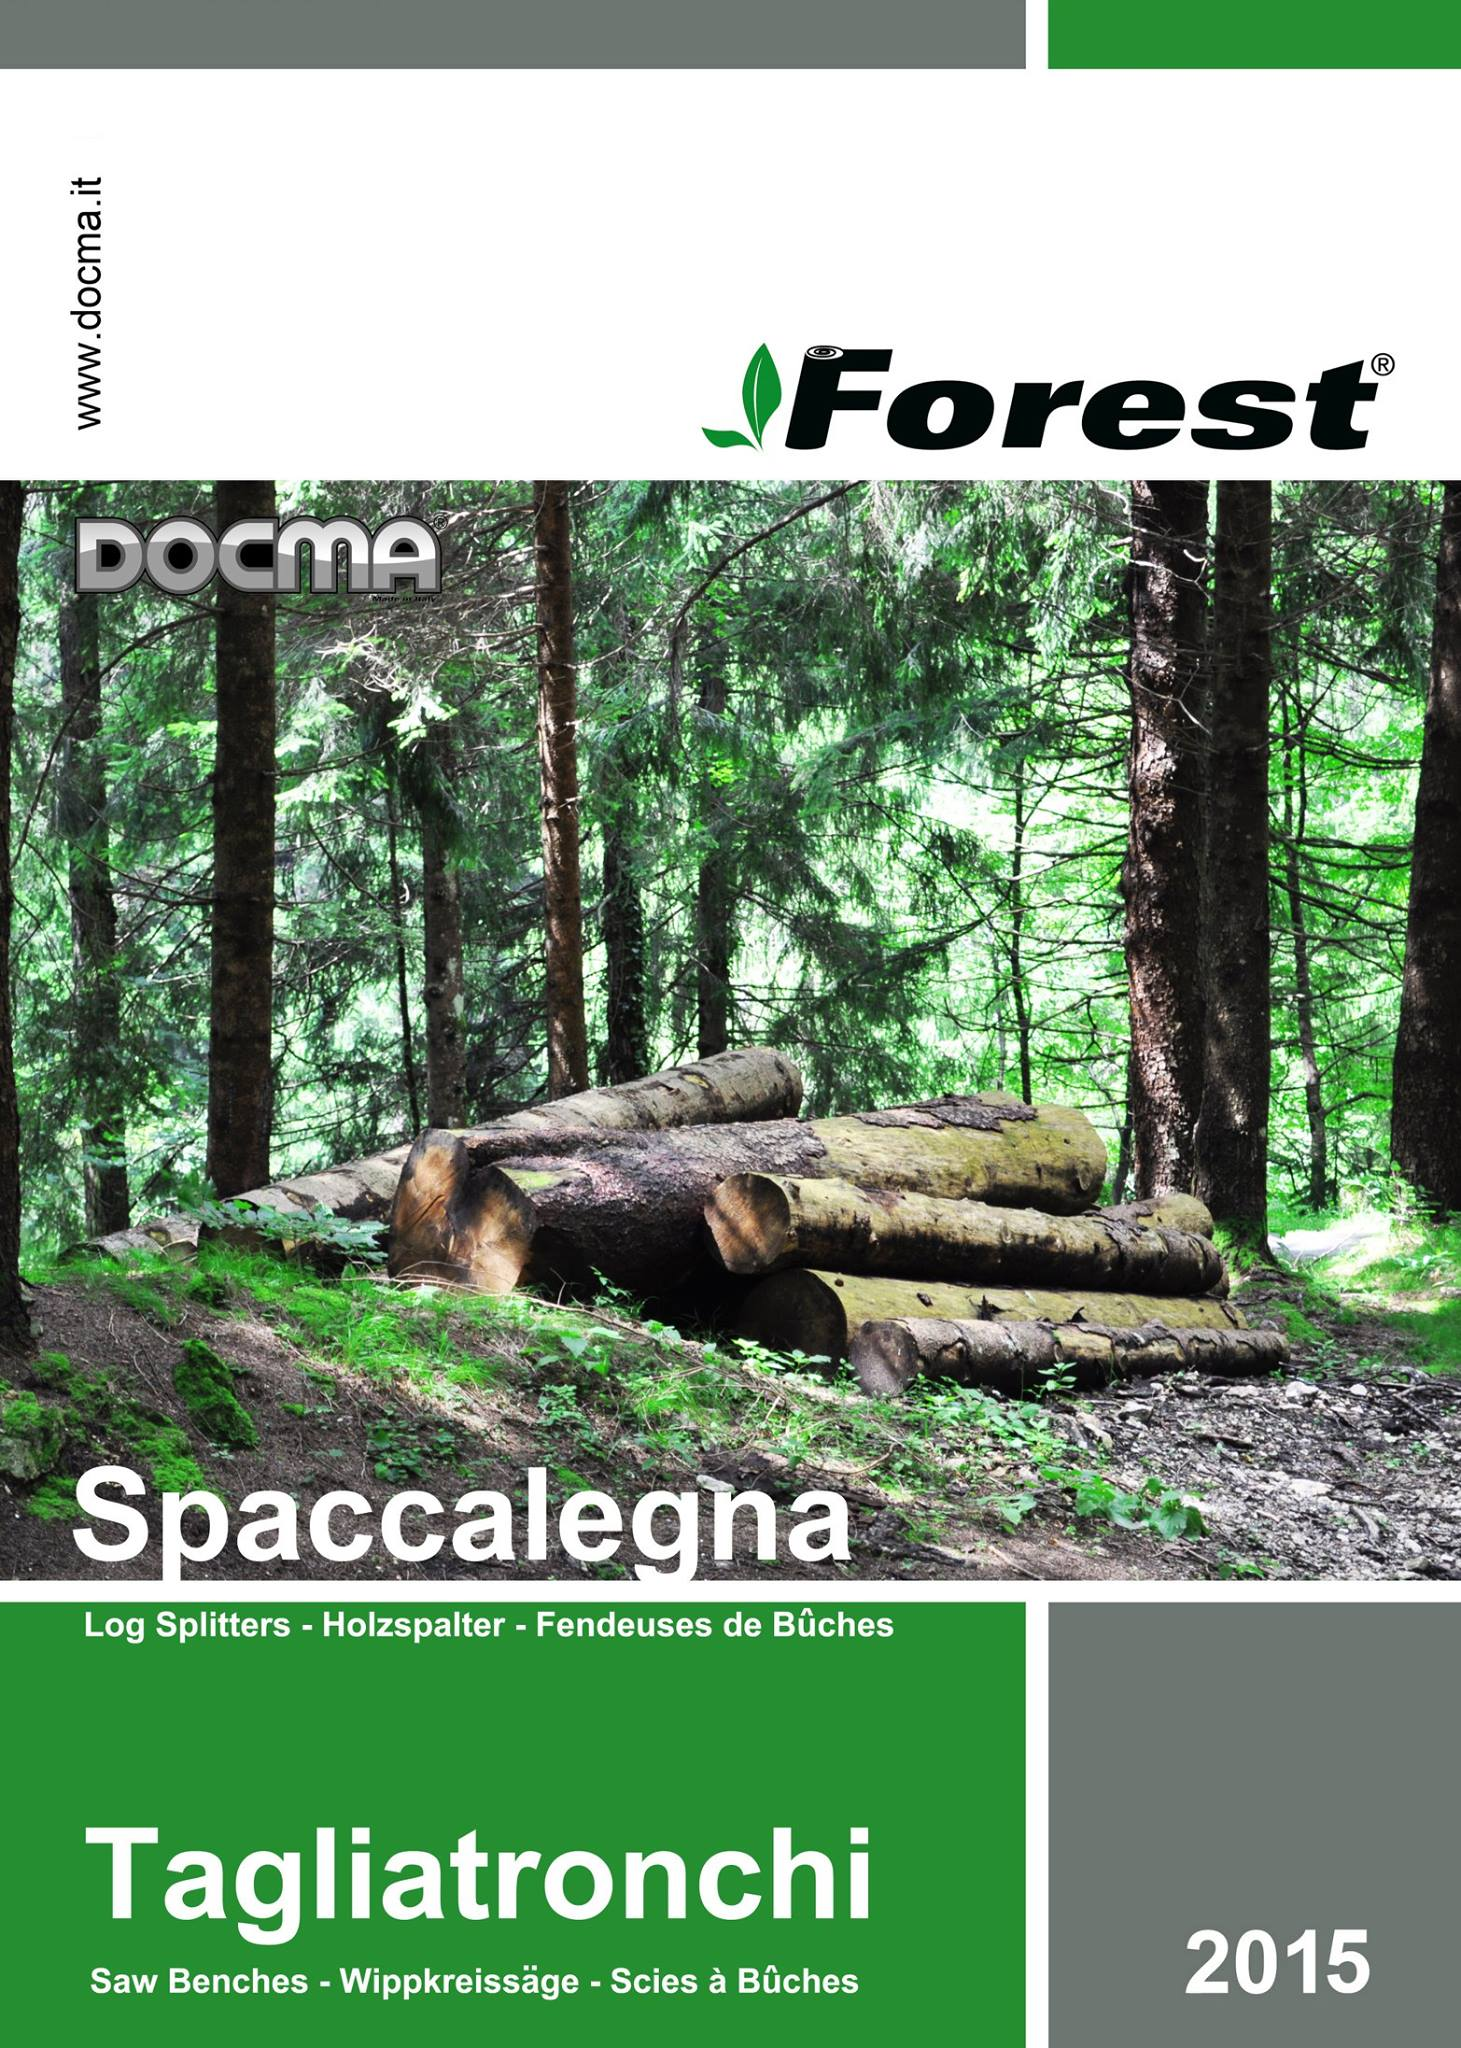 Forest 2015 - www.docma.it